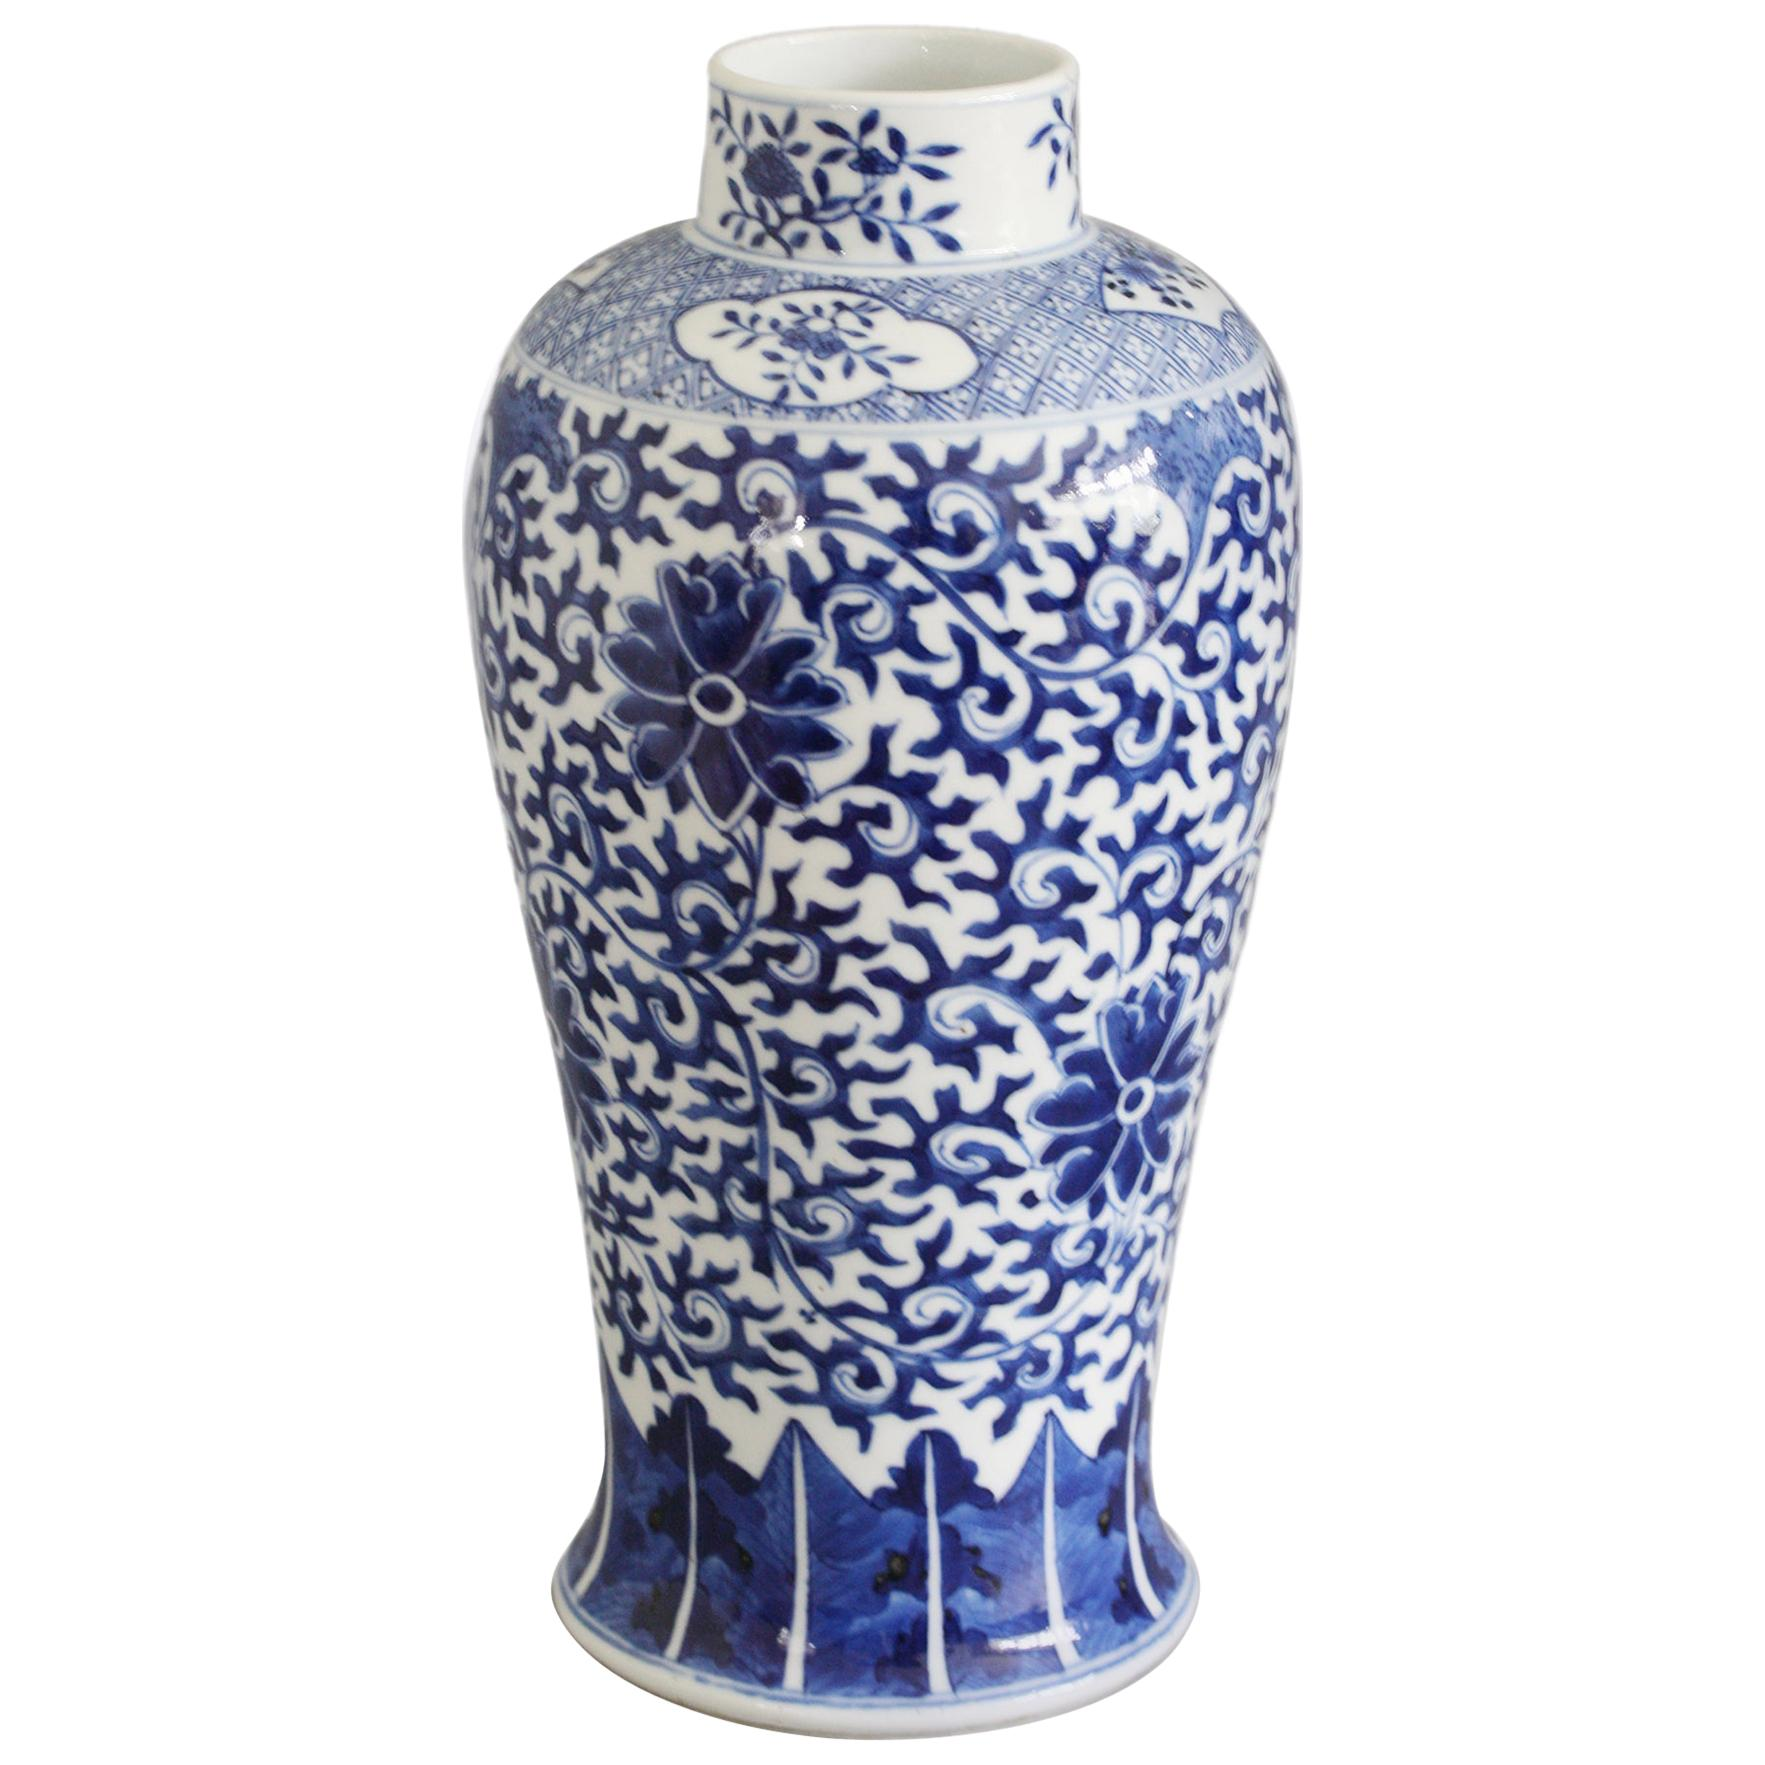 Chinese Qing Porcelain Blue and White Floral Vase